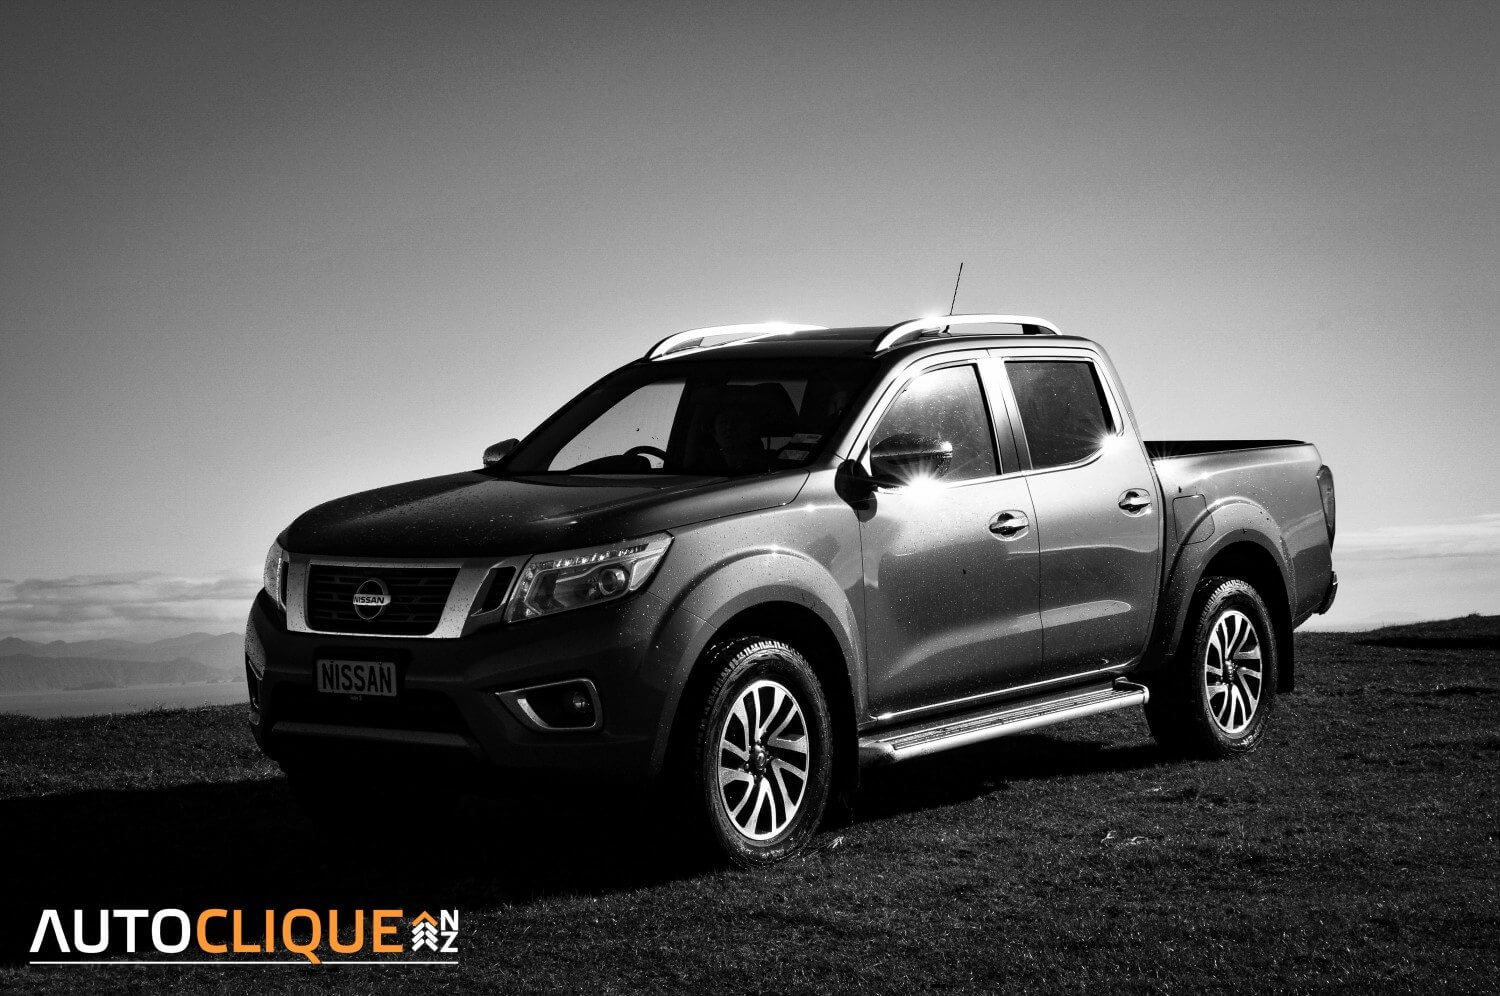 dealer launch nissan navara np300 st x 4x4 auto drivelife drivelife. Black Bedroom Furniture Sets. Home Design Ideas